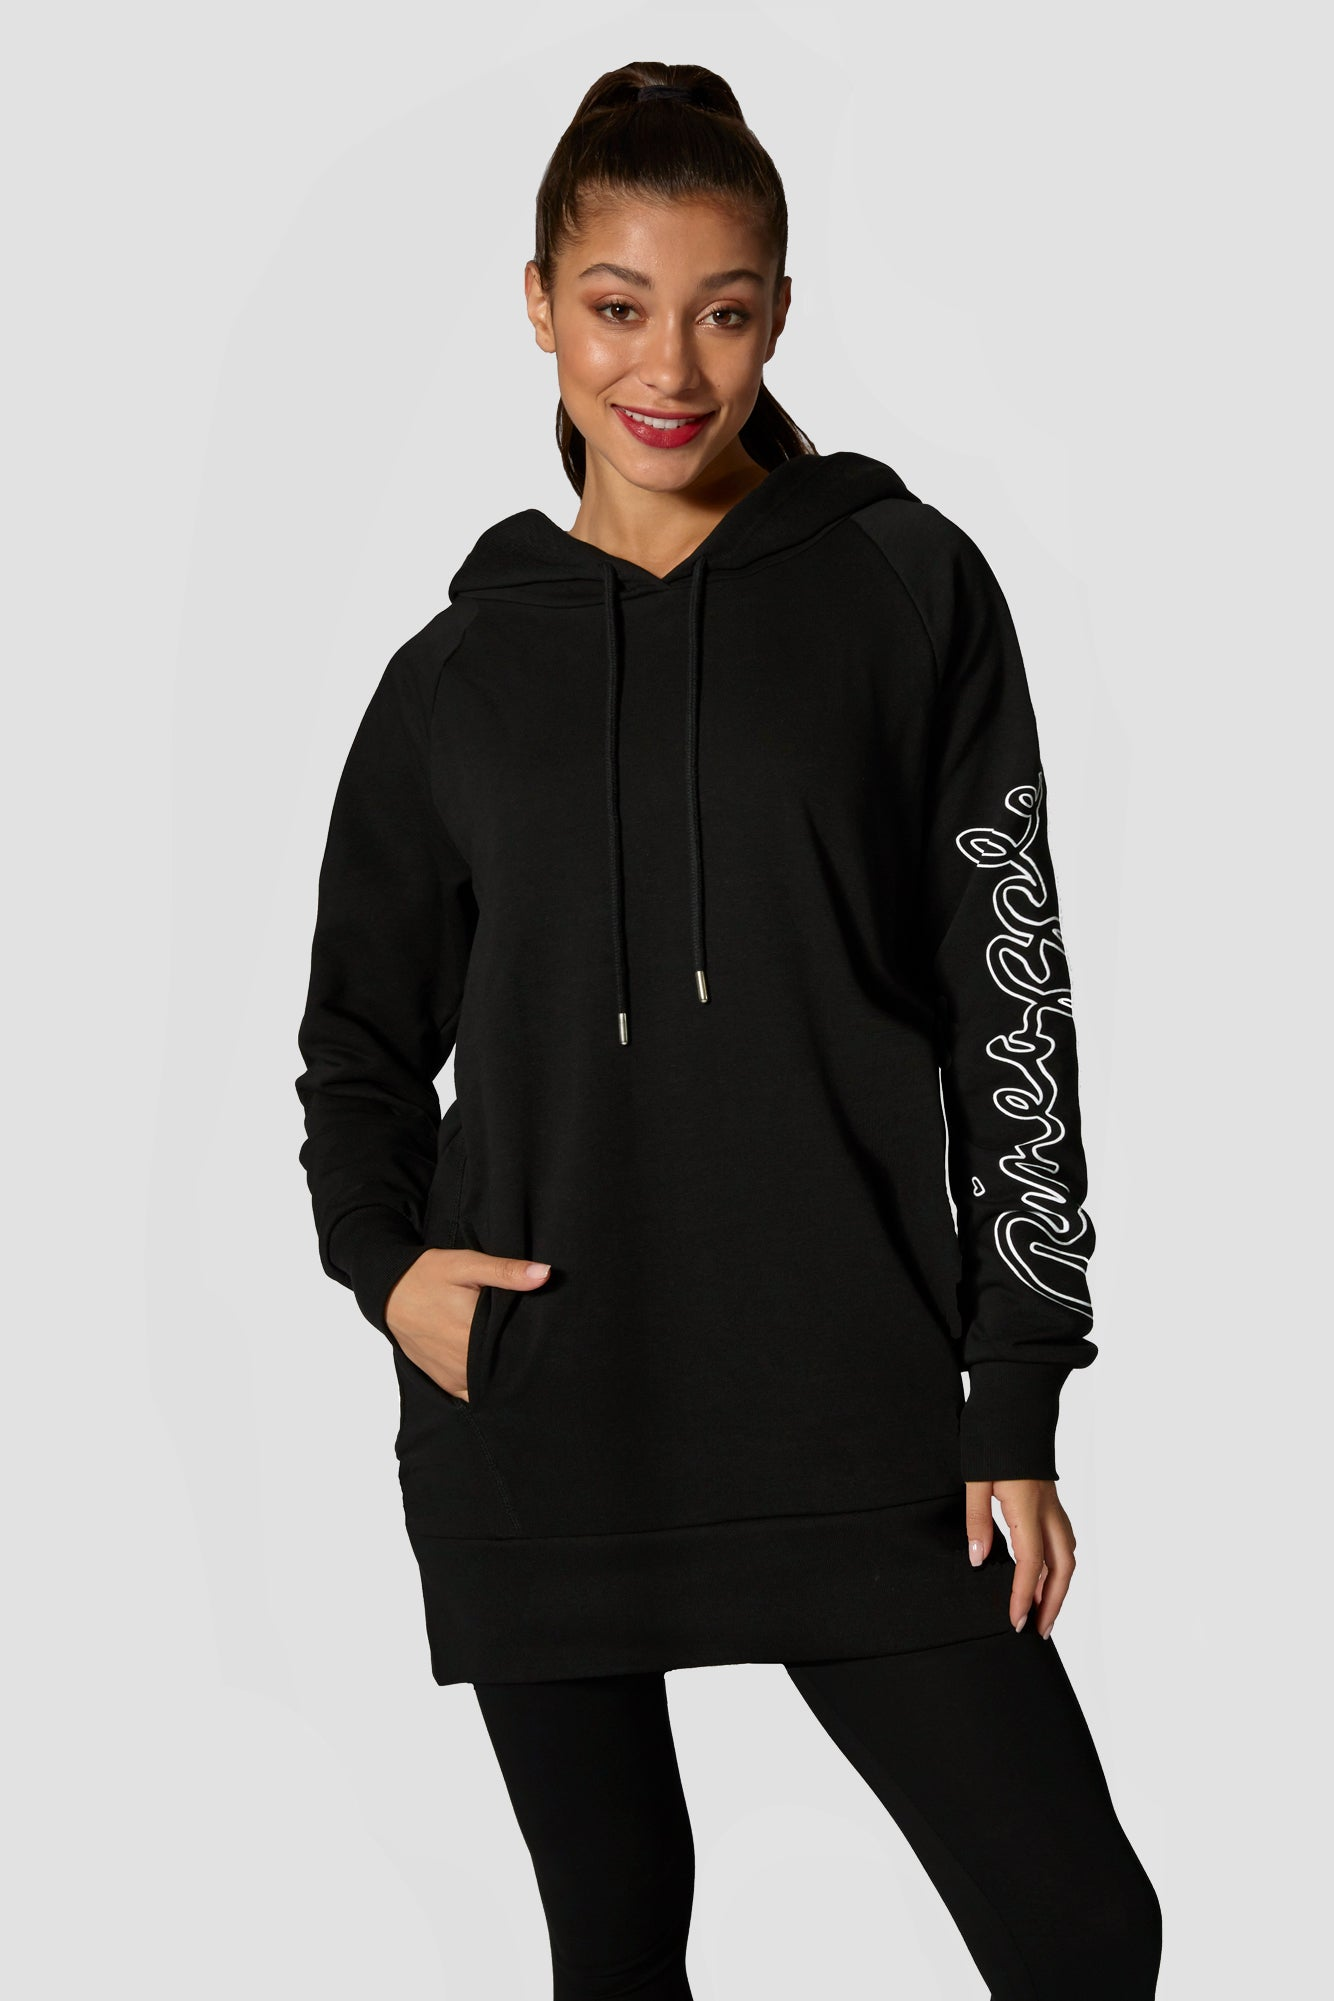 Pineapple Dancewear Women's Black Loopback Long Hoodie